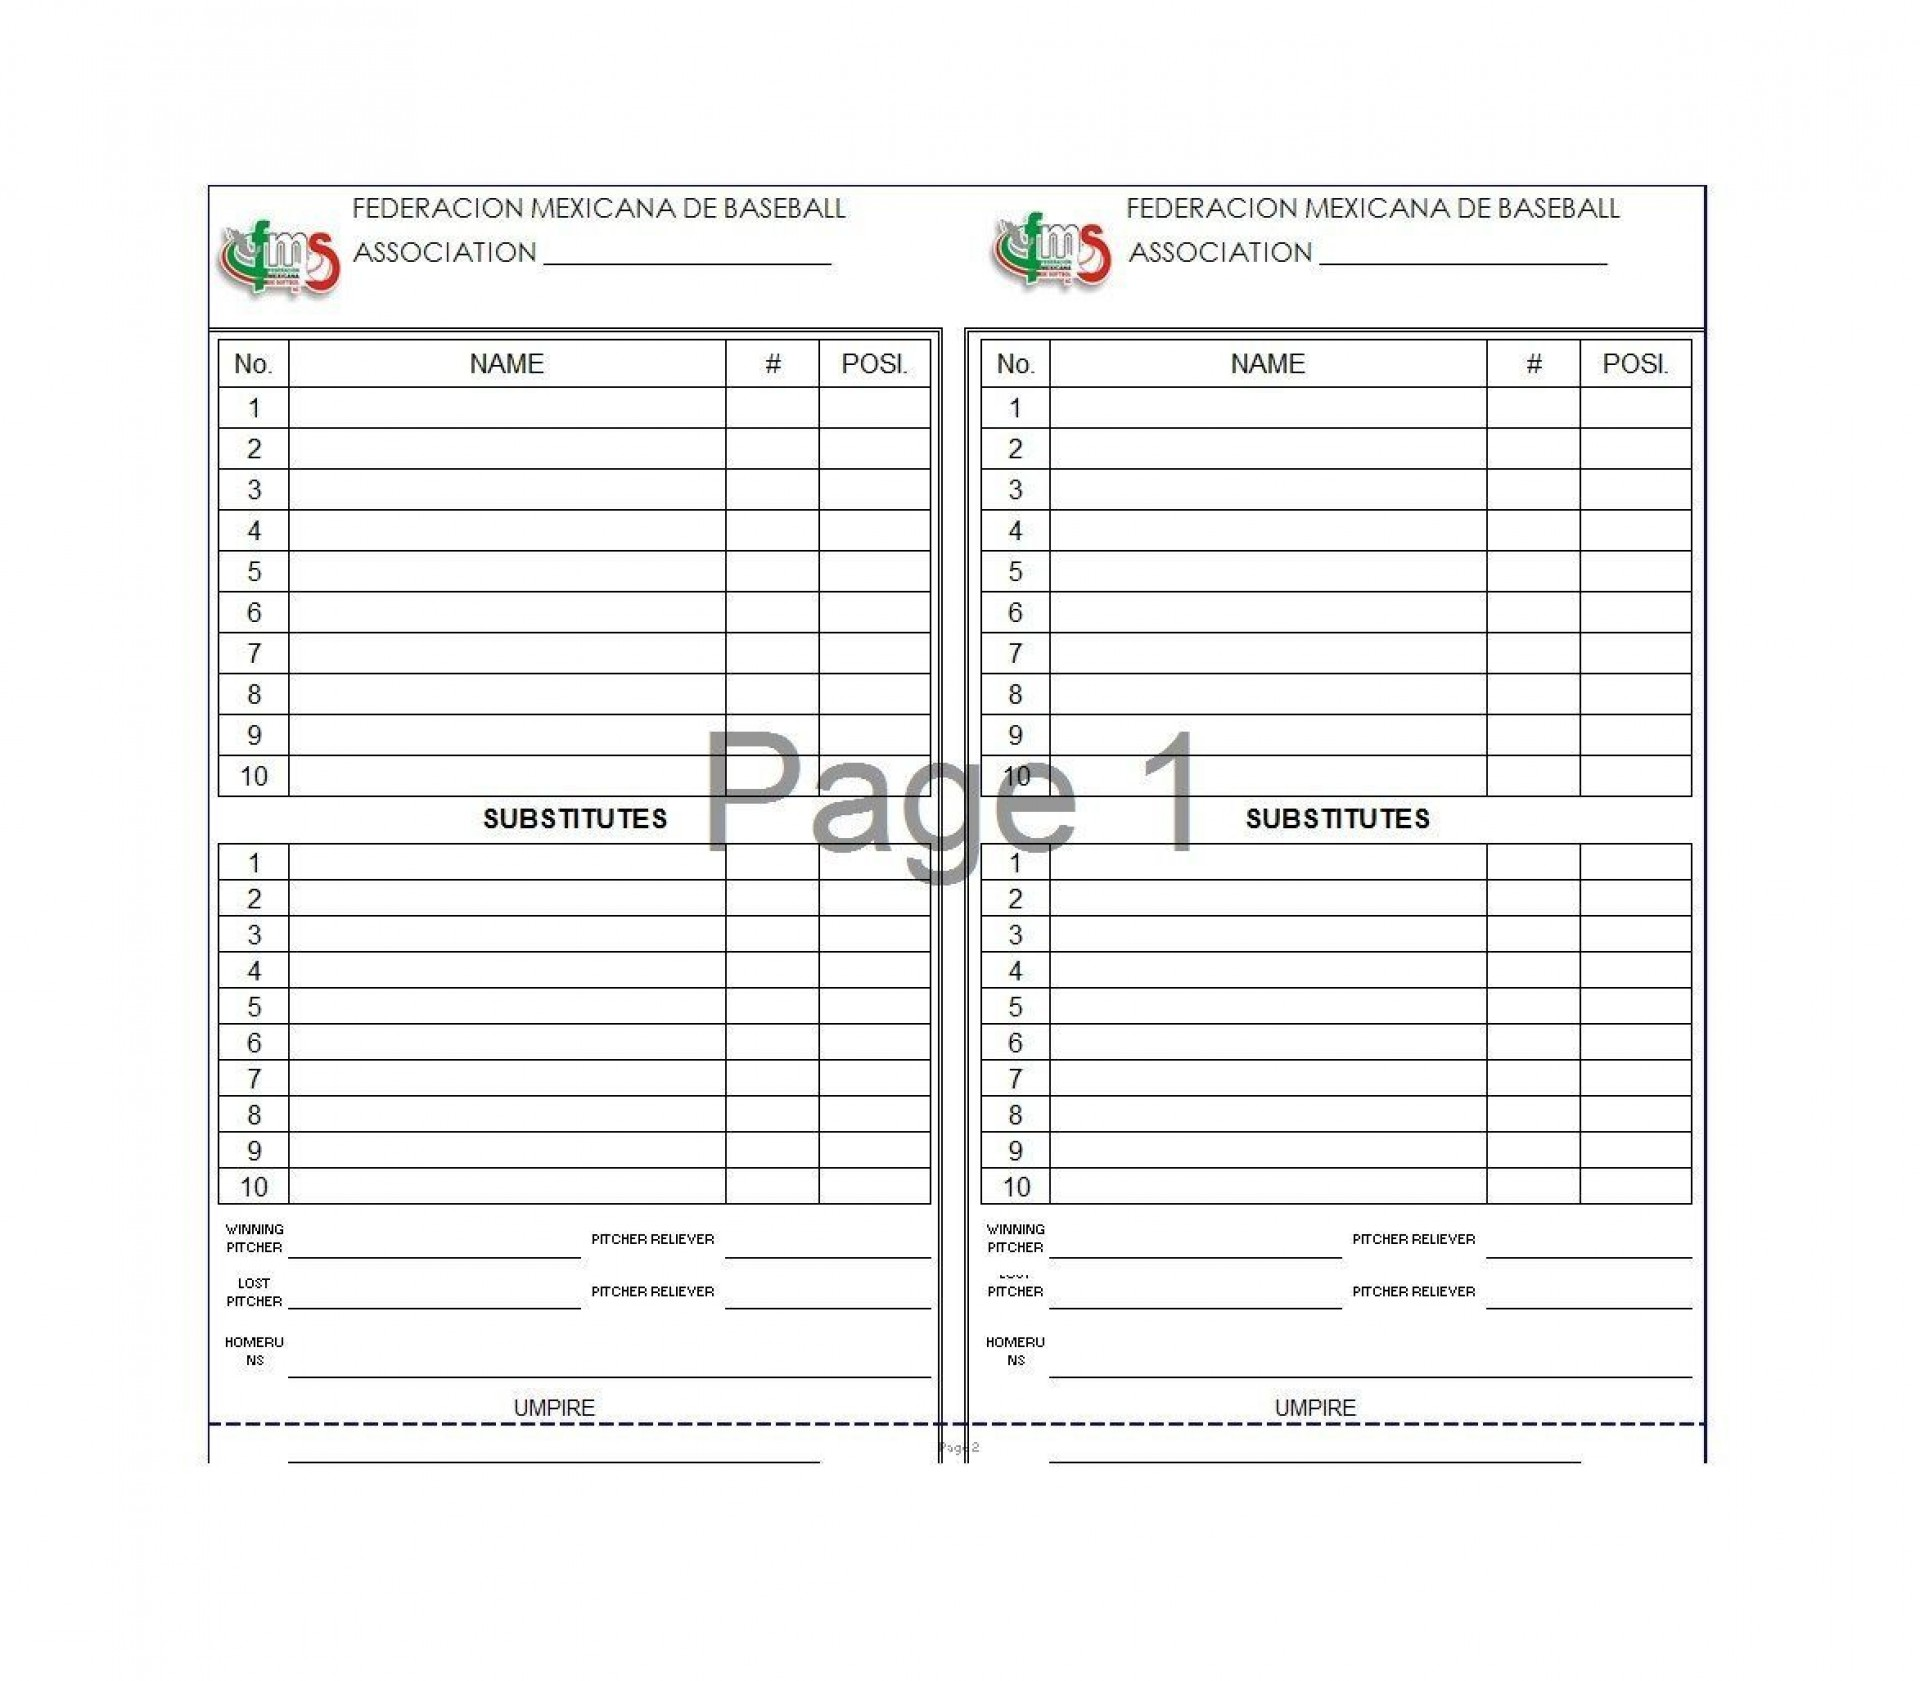 001 Sensational Baseball Lineup Card Template Example  Free Excel Dugout1920